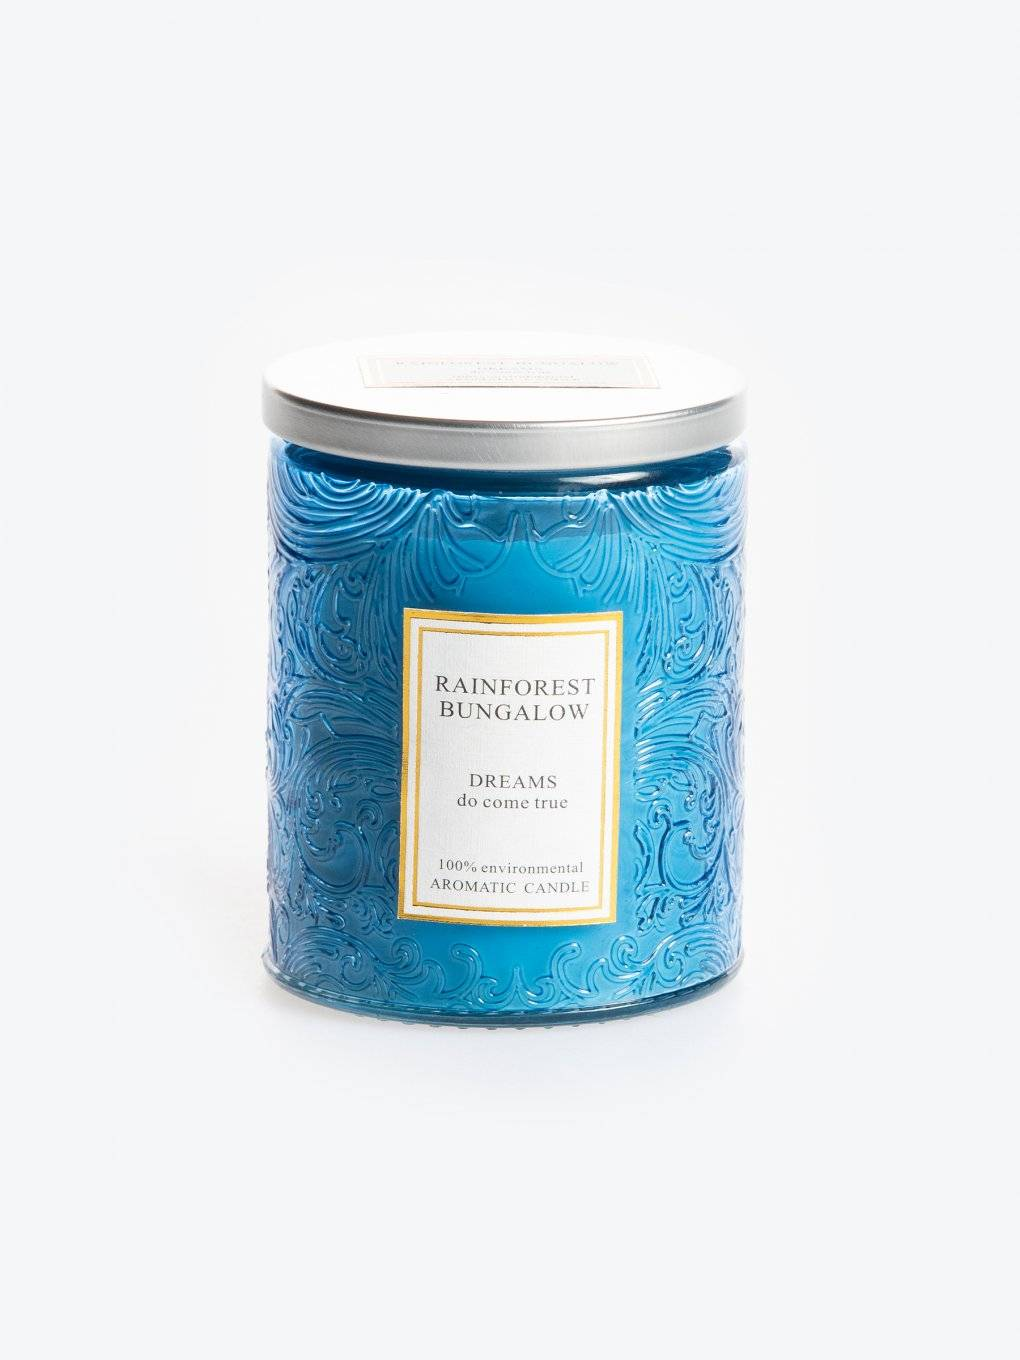 Rainforest bungalow scented candle